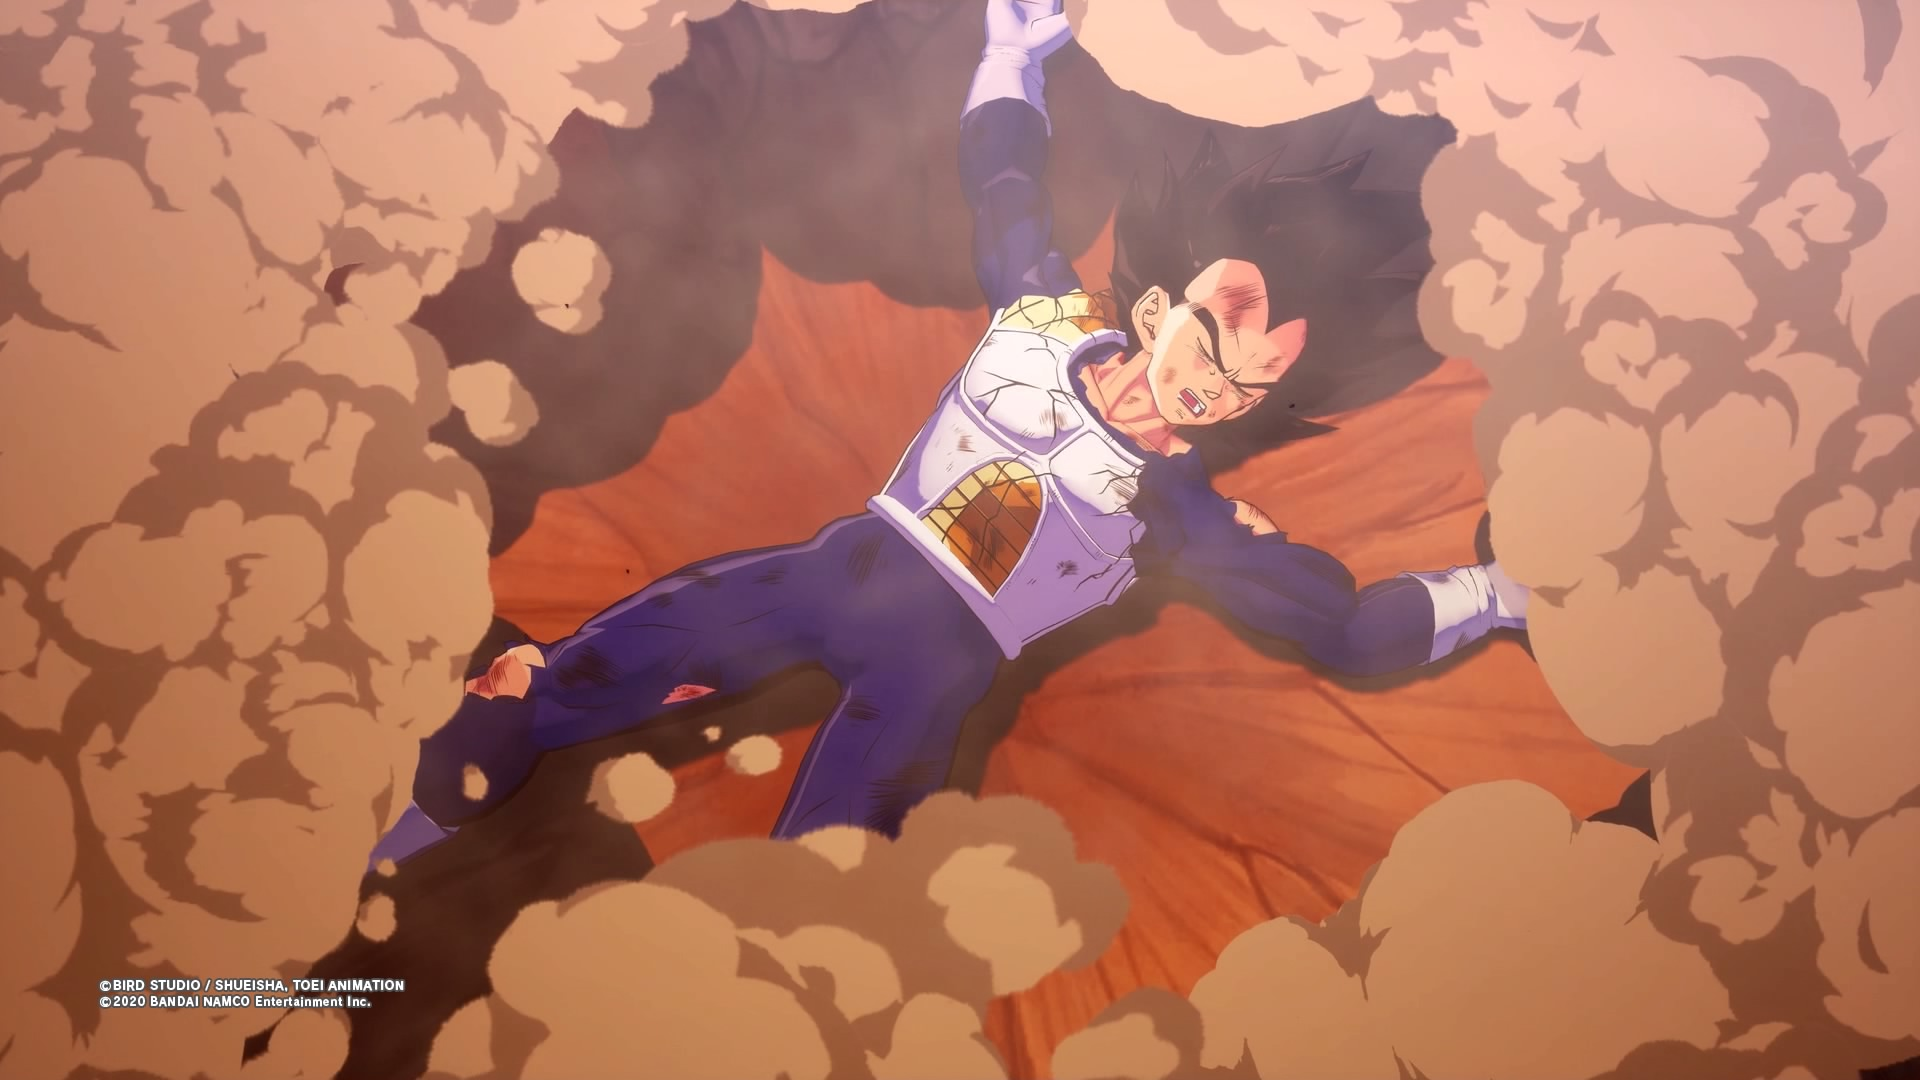 Screenshot From Dragon Ball Z Kakarot Featuring Vegeta Getting The Crap Kicked Out Of Him